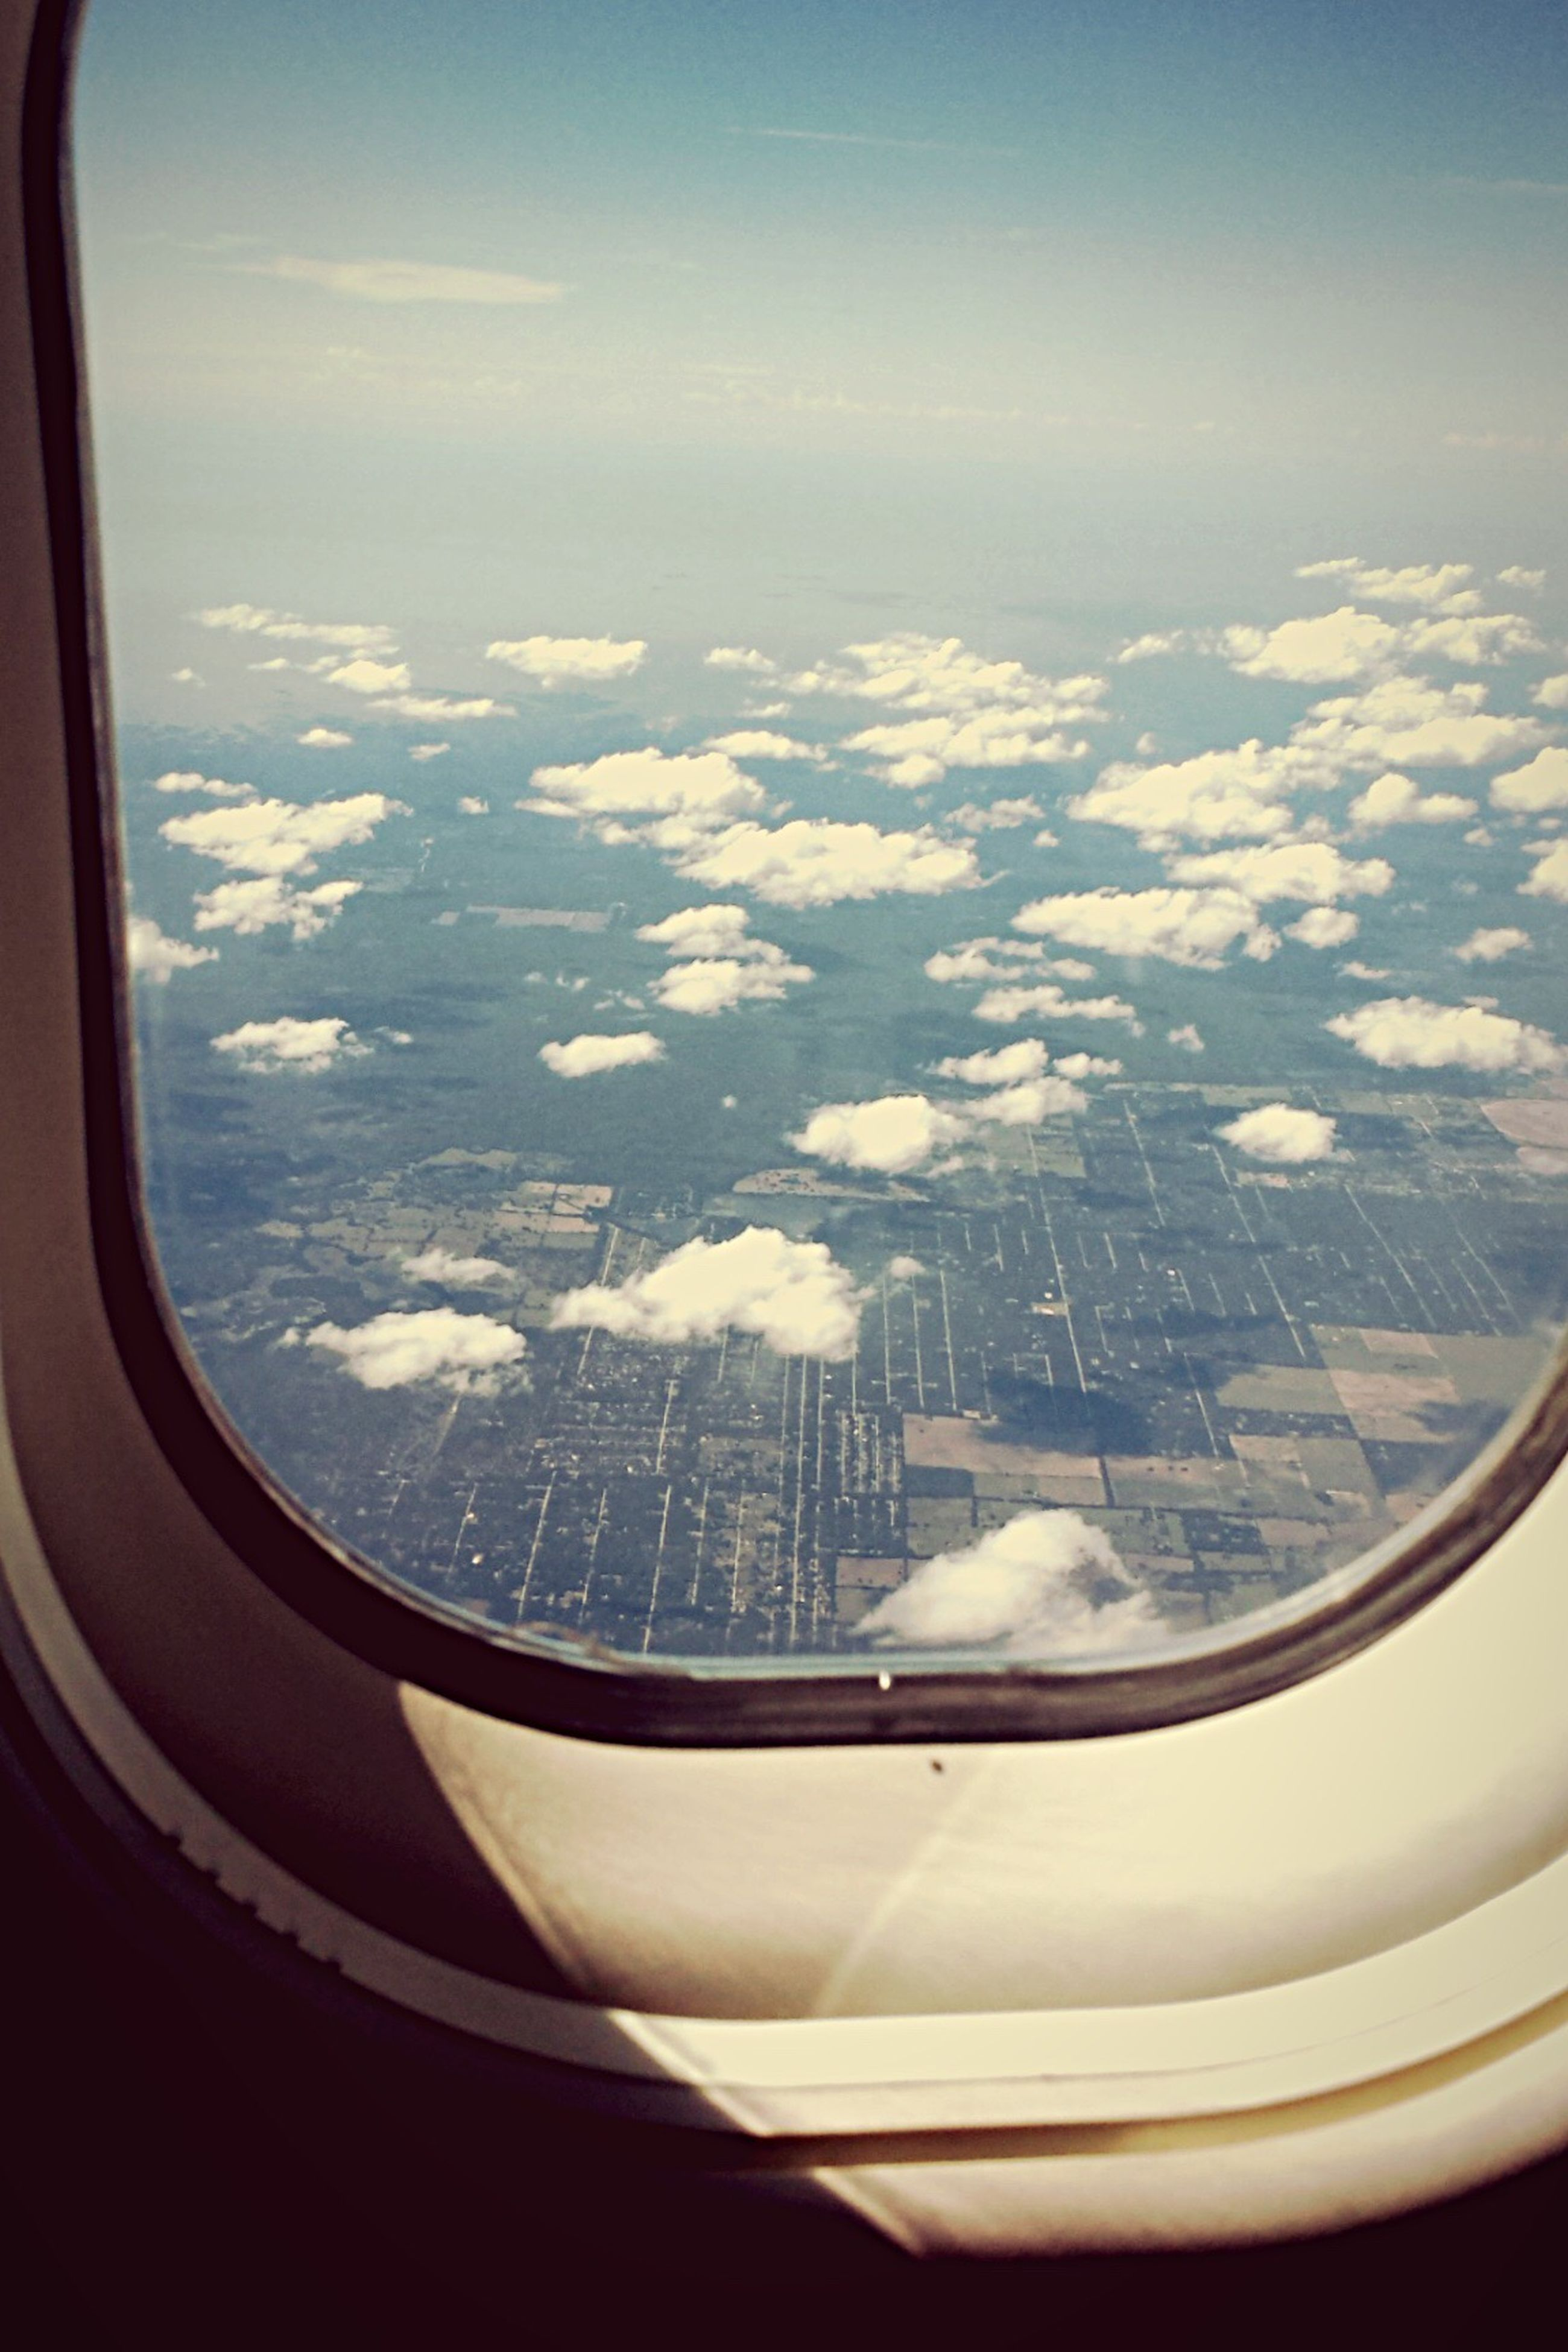 aerial view, airplane, air vehicle, sky, window, landscape, snow, mountain, winter, transportation, cold temperature, nature, mode of transport, white color, travel, scenics, indoors, cloud - sky, flying, glass - material